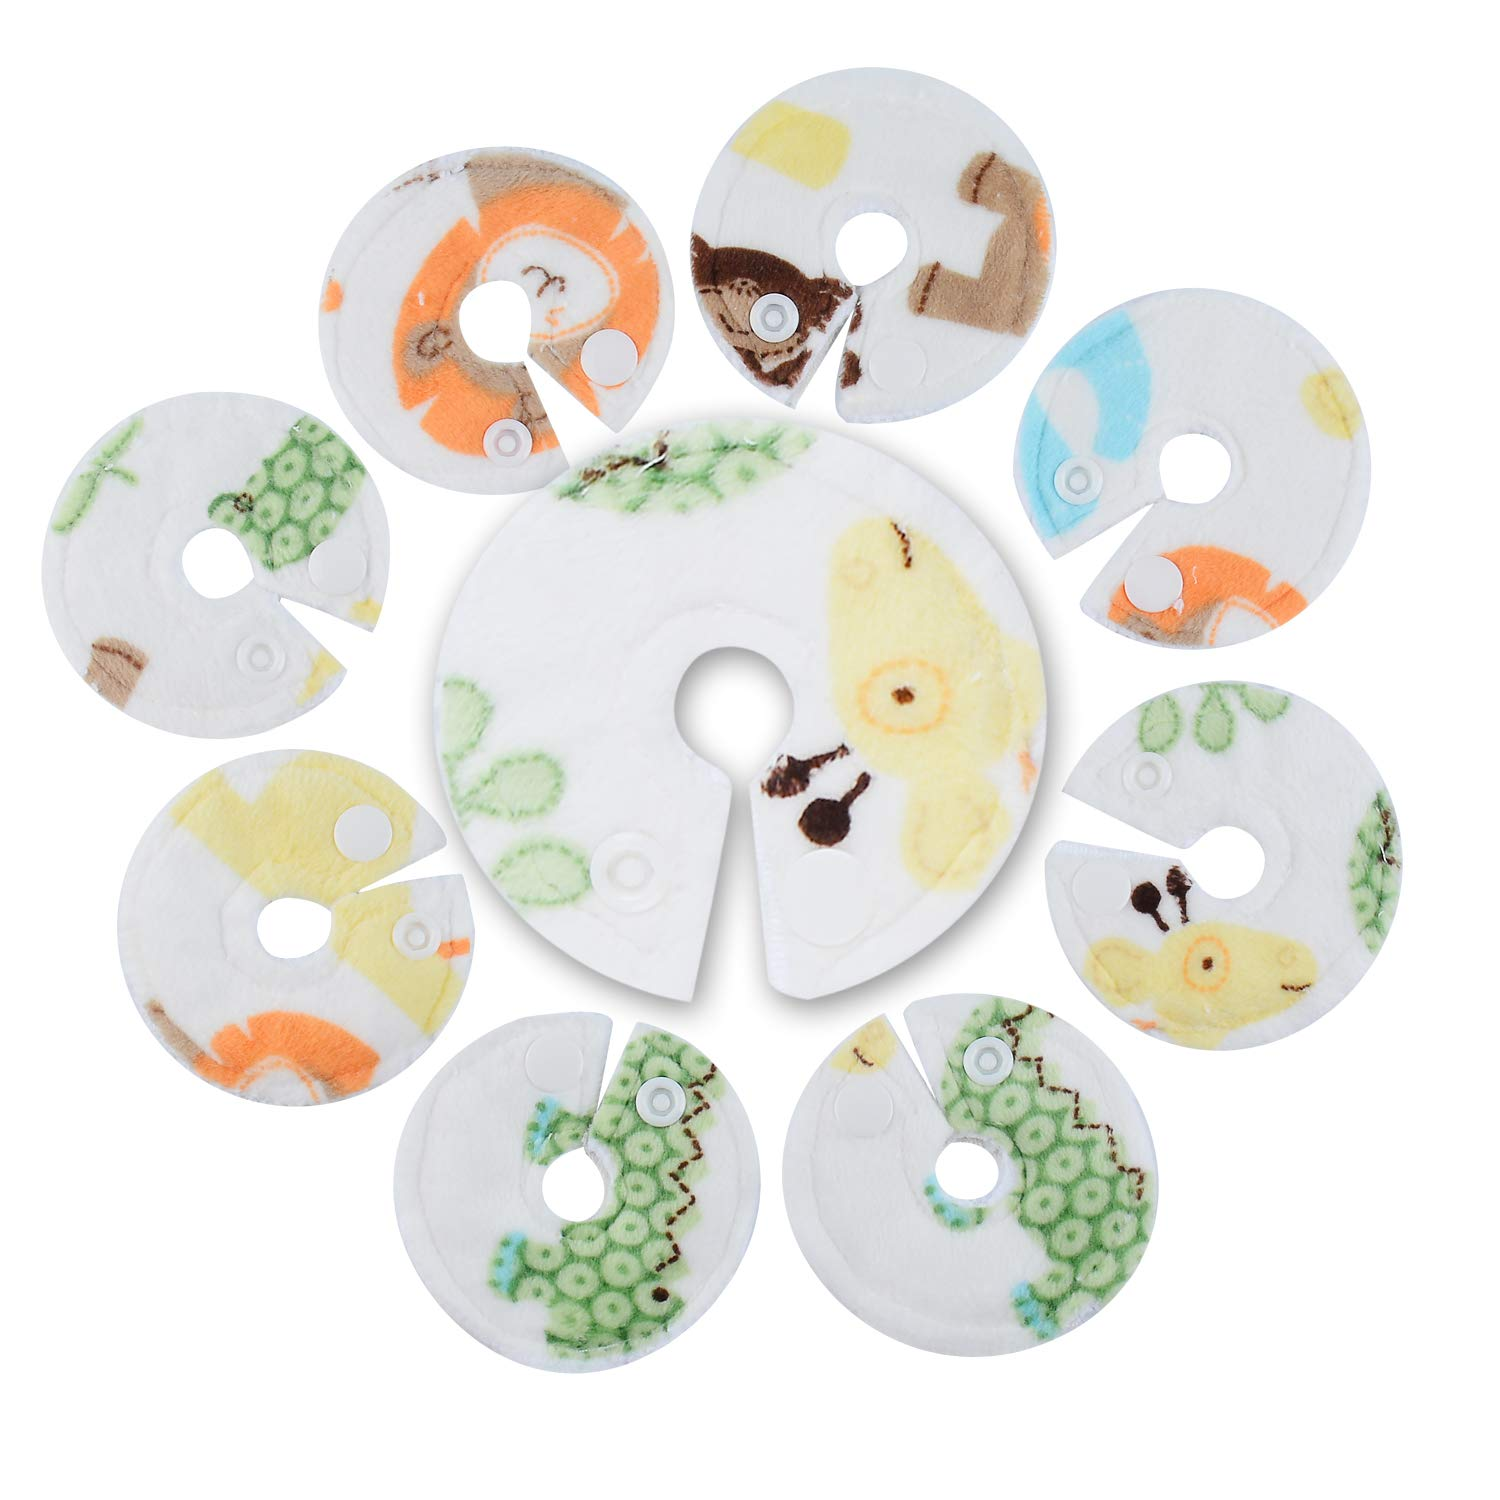 Ian's Choice Tube Pads Organic Bamboo Covers for Feeding Support Extra Soft and Absorbent Button Covers (8 Pack)